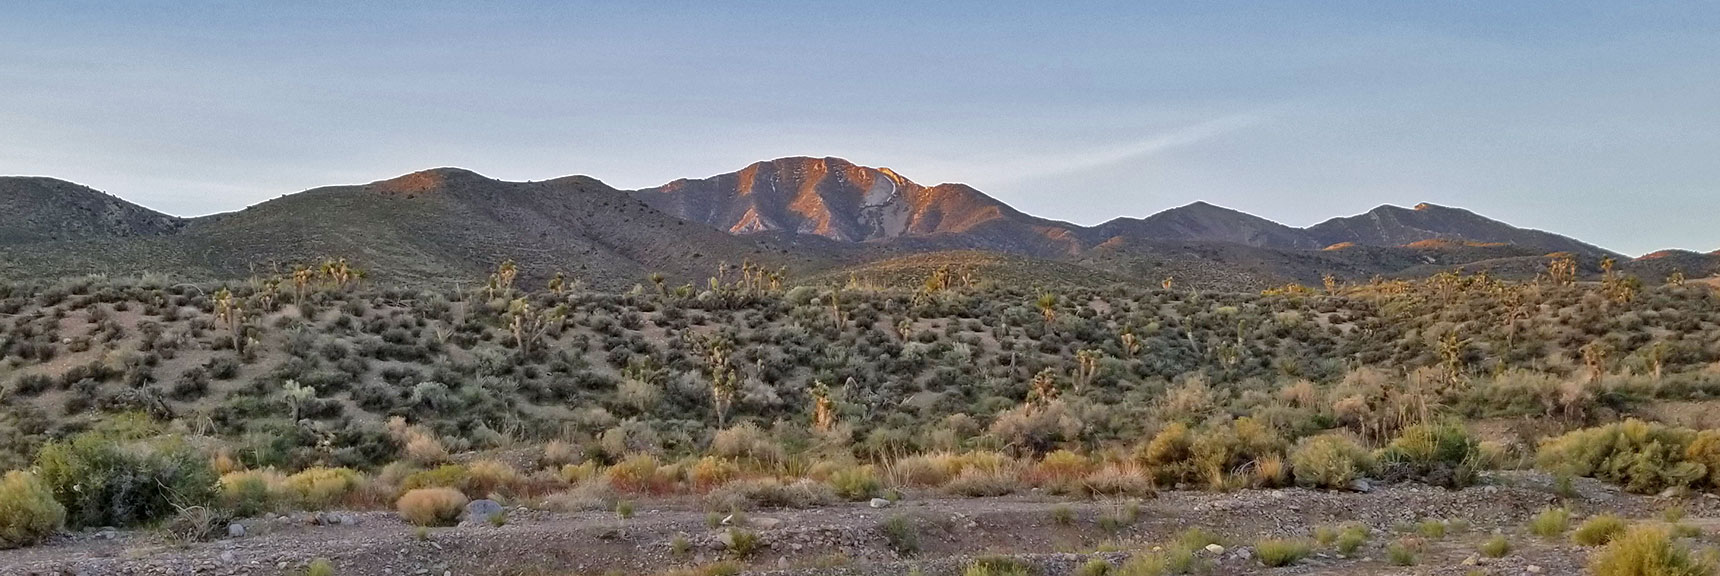 View from Kyle Canyon Road, La Madre Mountain Nevada Northern Approach and High Points